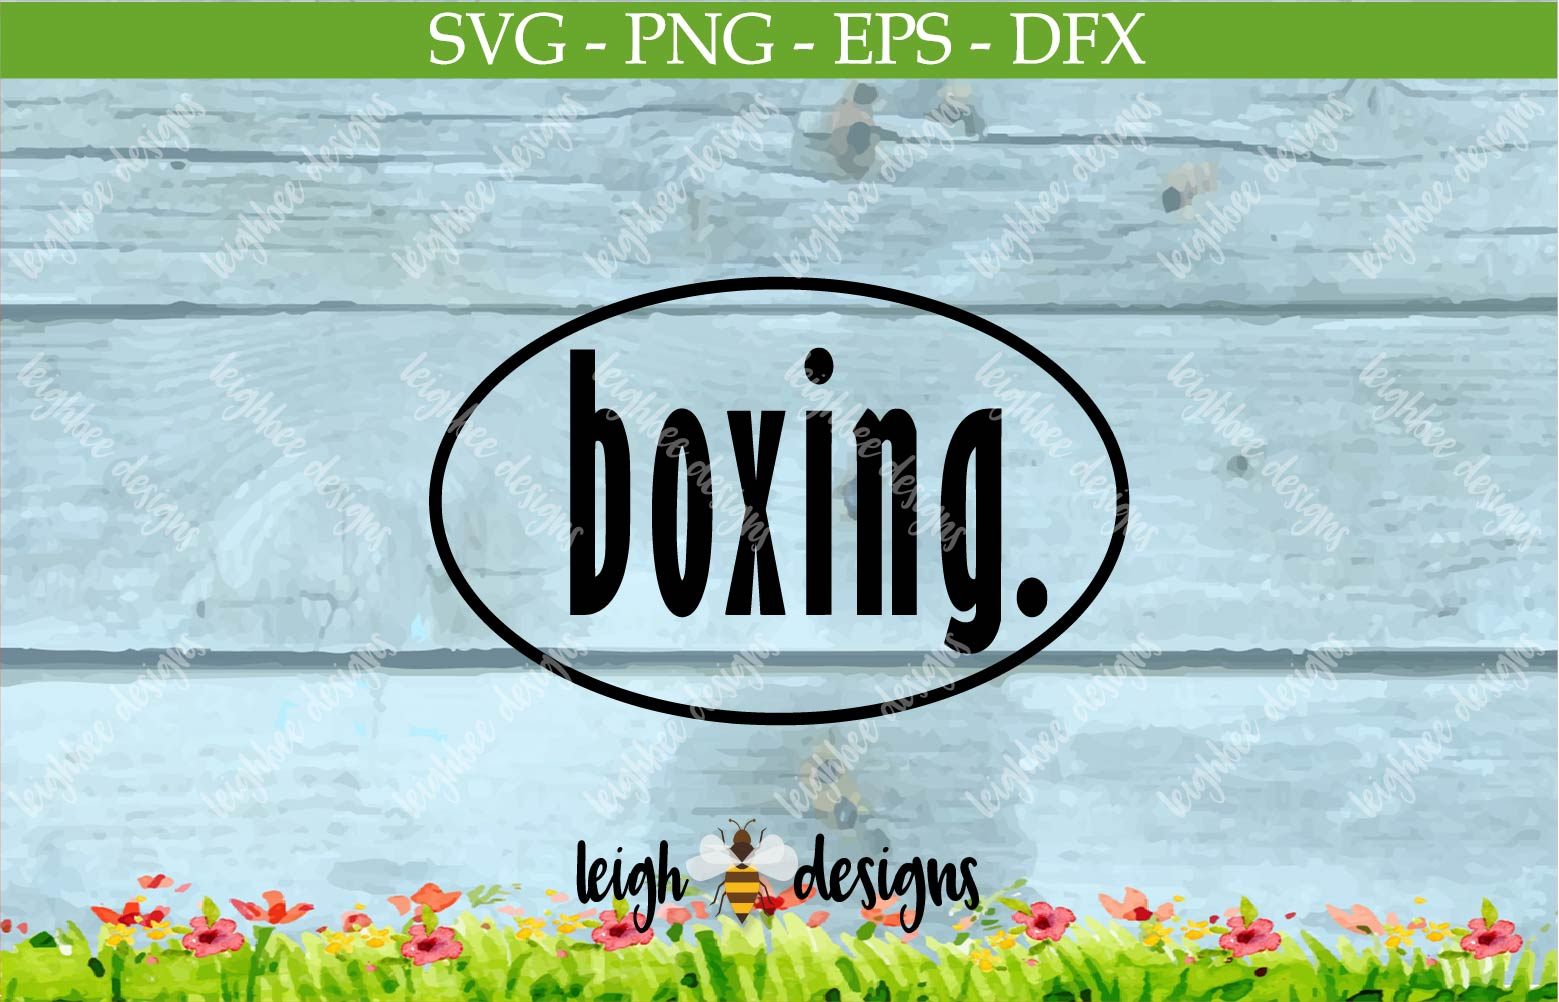 Boxing Oval SVG/DFX/PNG/EPS File  example image 3